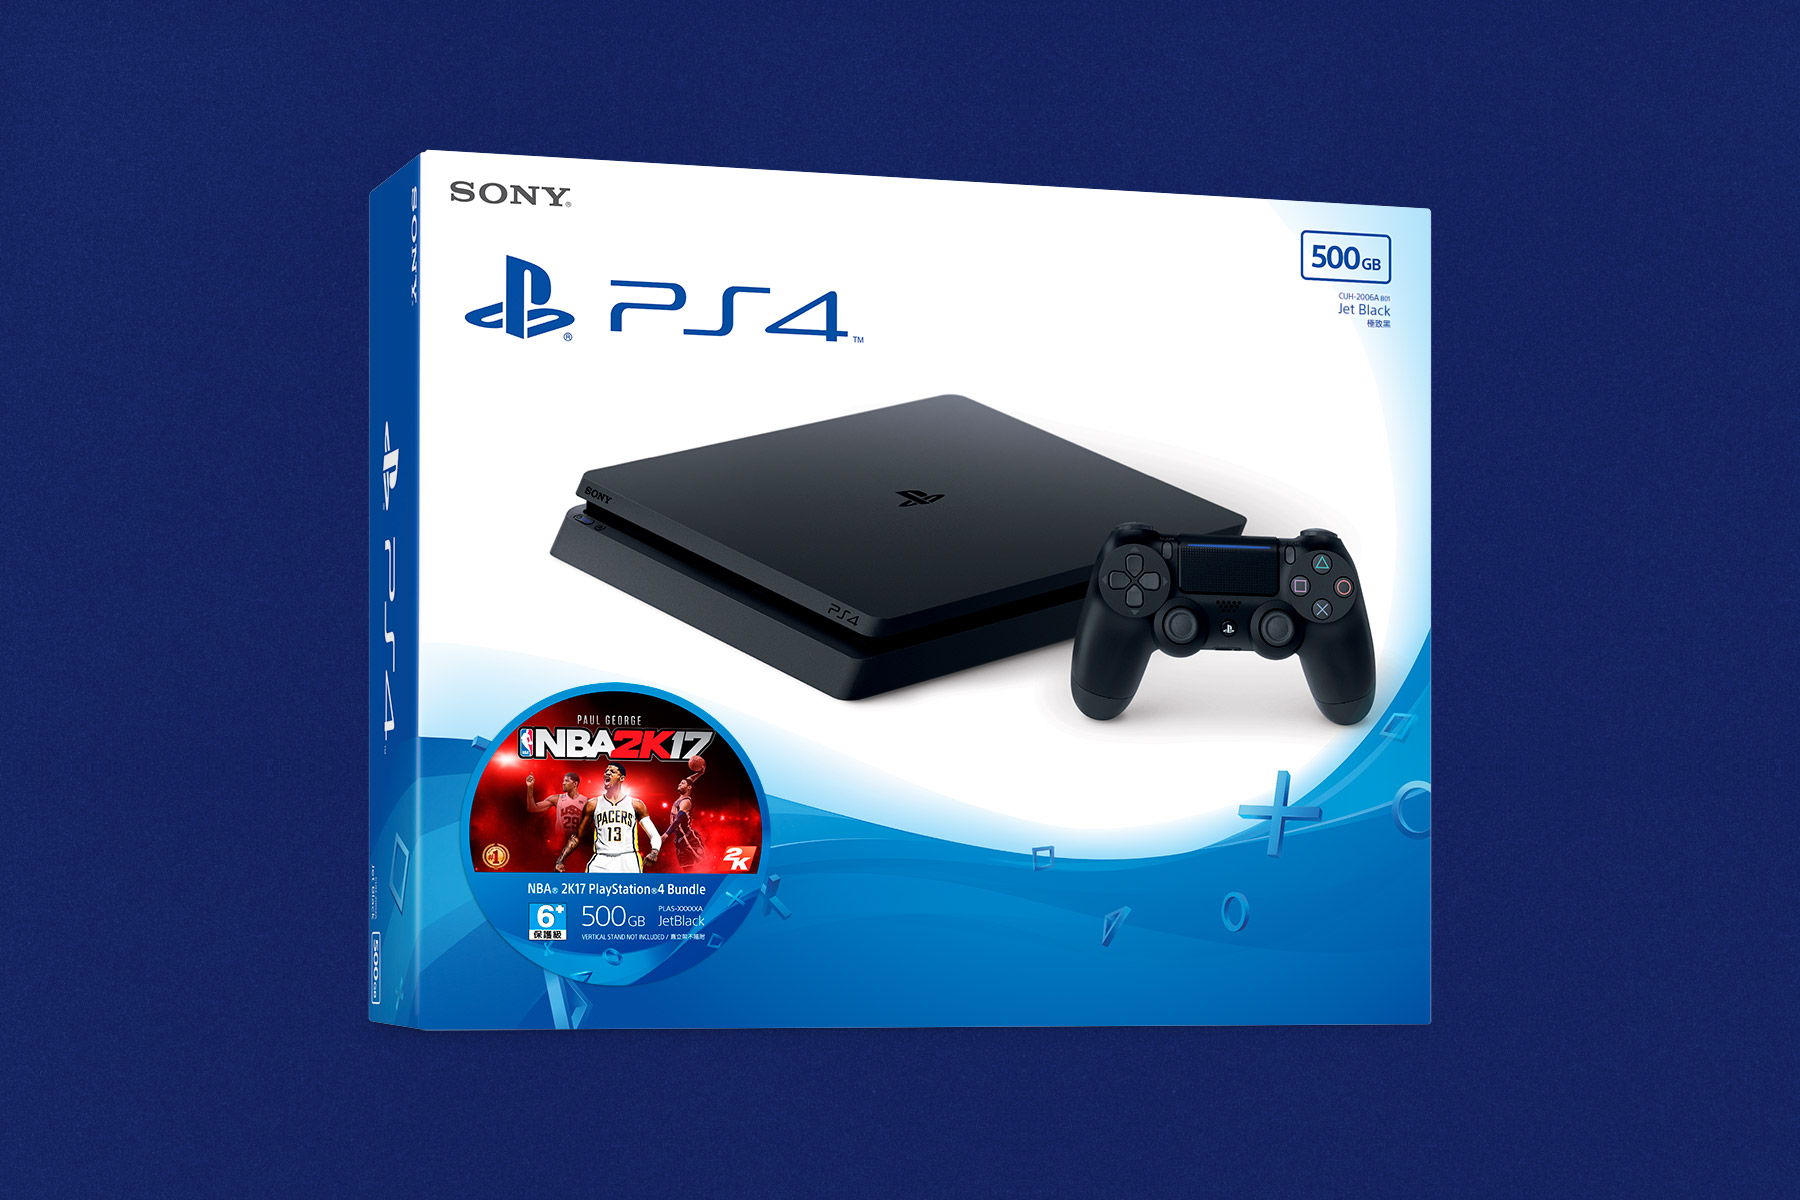 Sony Playstation 4 Pro And Slim First Look Pricing For Southeast Ps4 500gb Black Theres A Slightly Updated Dualshock Controller To Forward It Now Enables Light From The Bar Emit In Different Colors Signify Visual